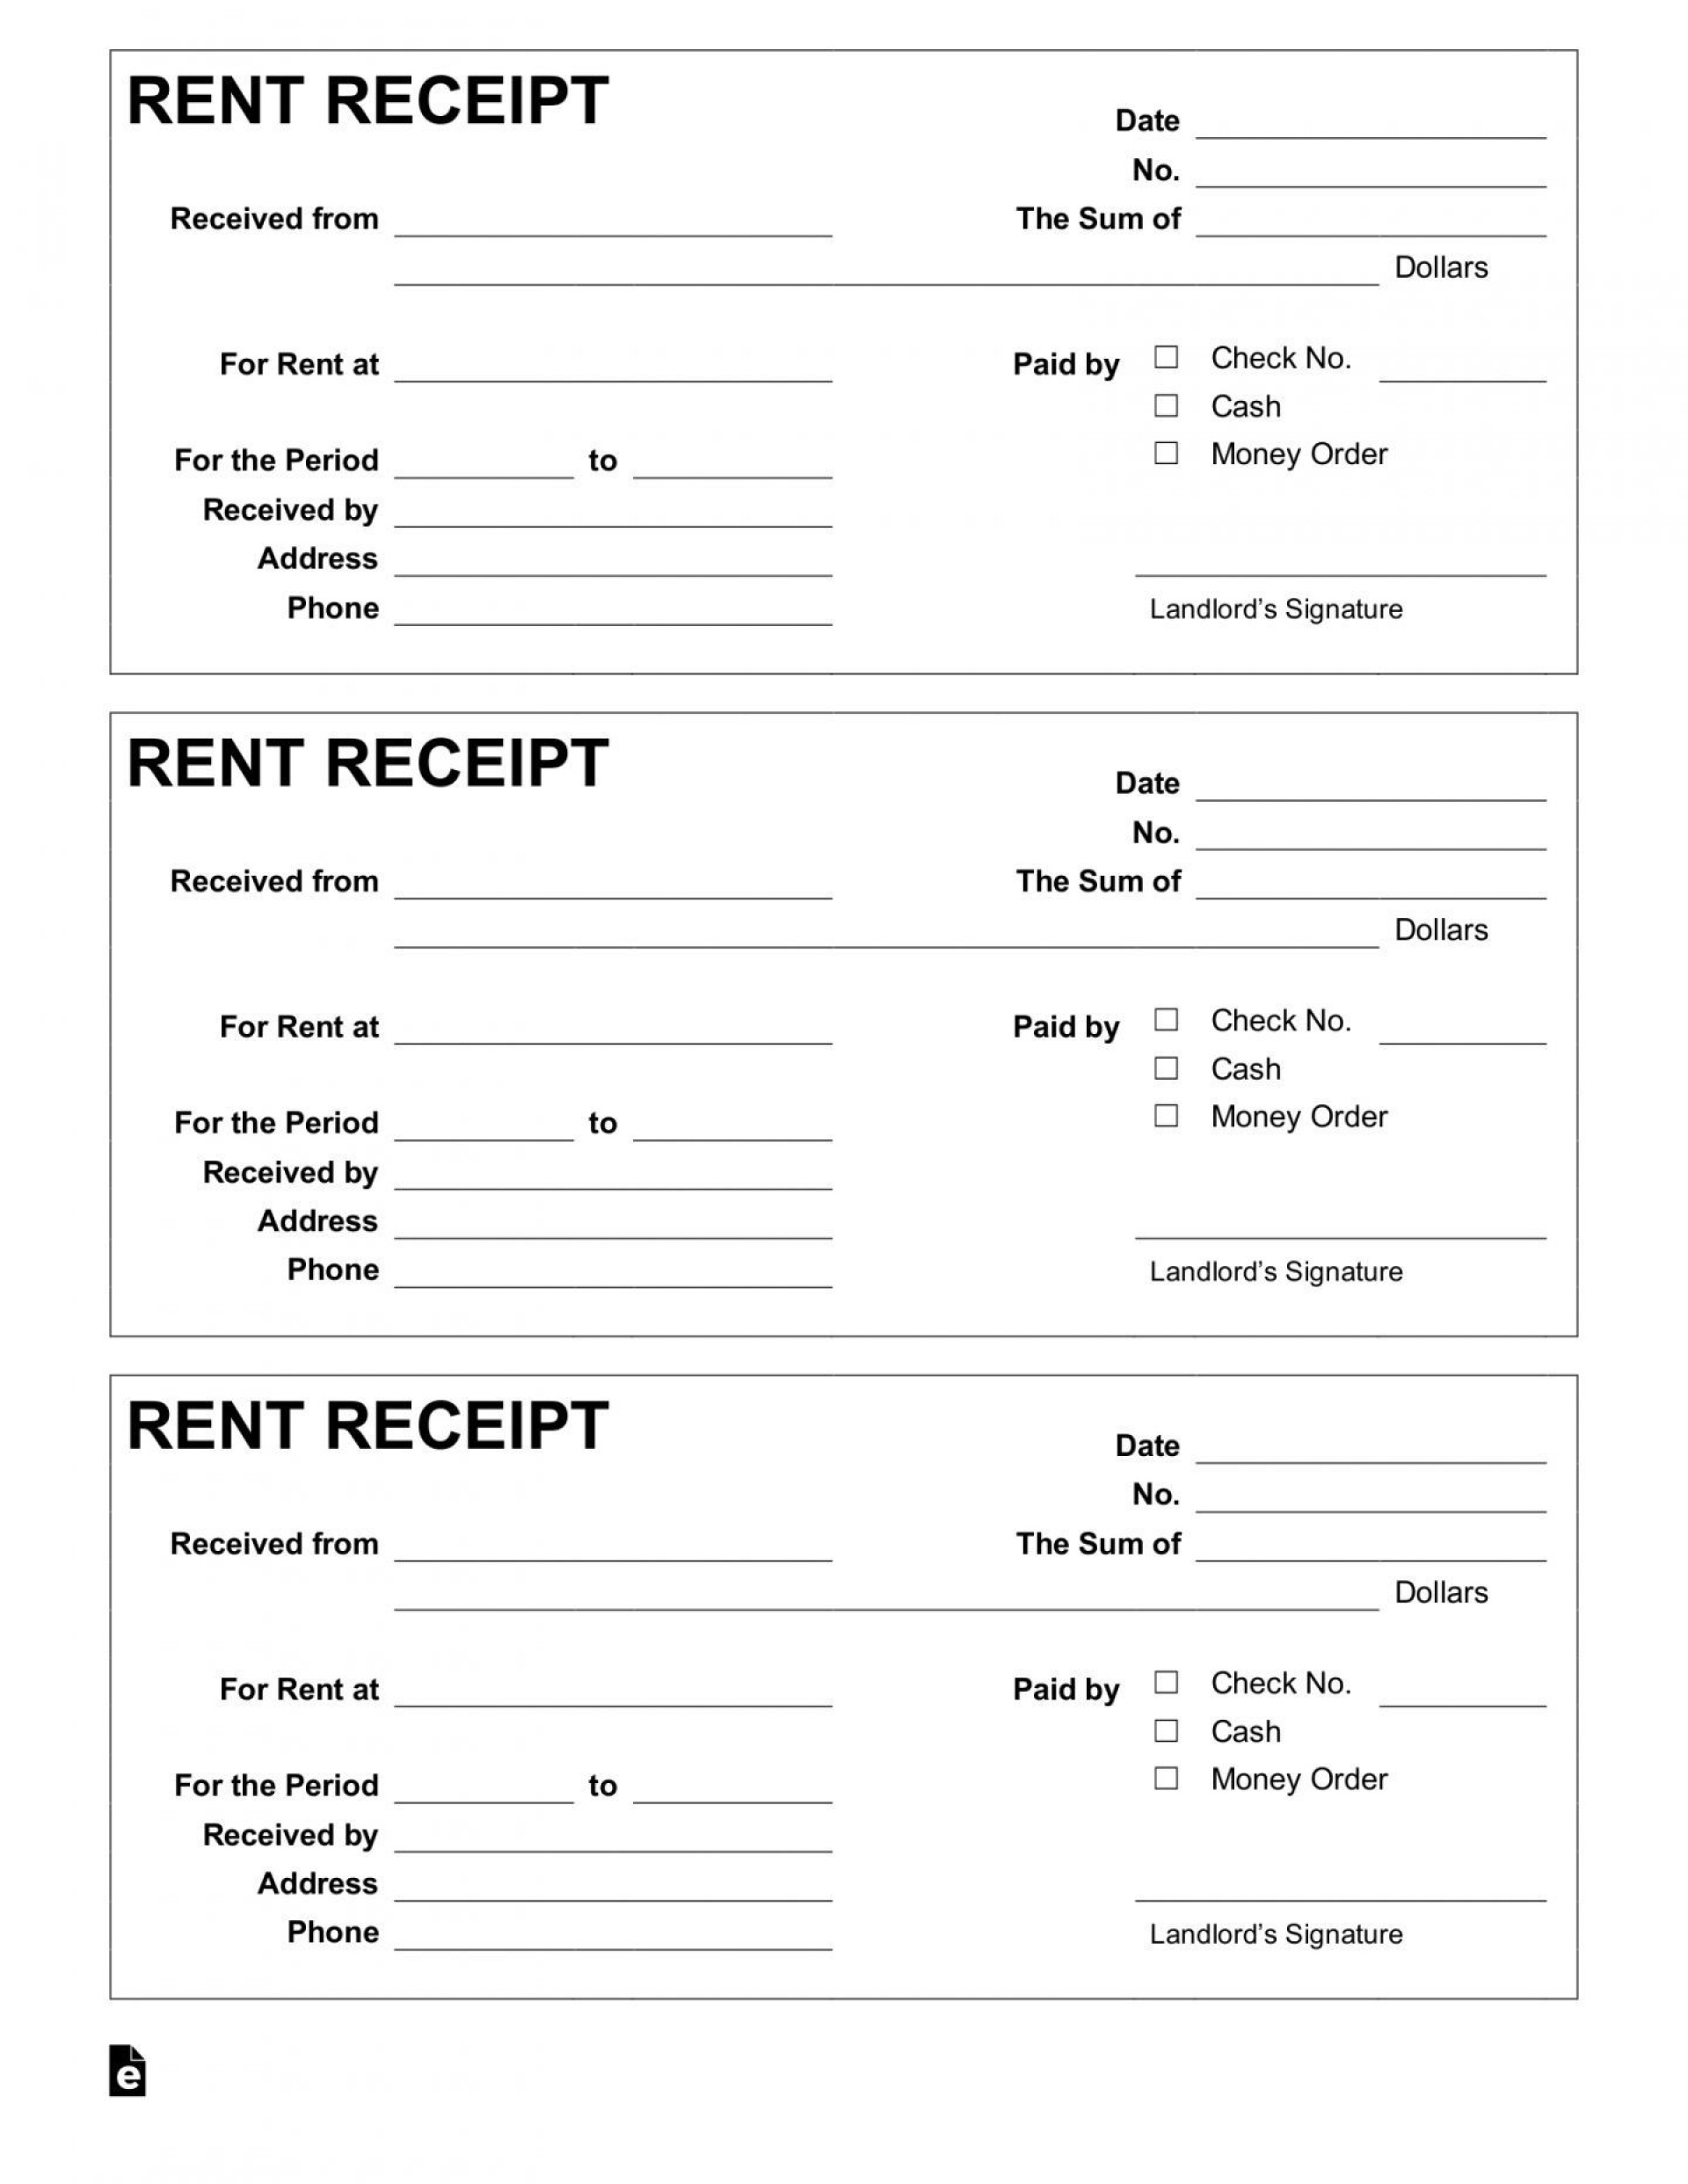 001 Amazing Rent Payment Receipt Template Inspiration  Excel Free1920